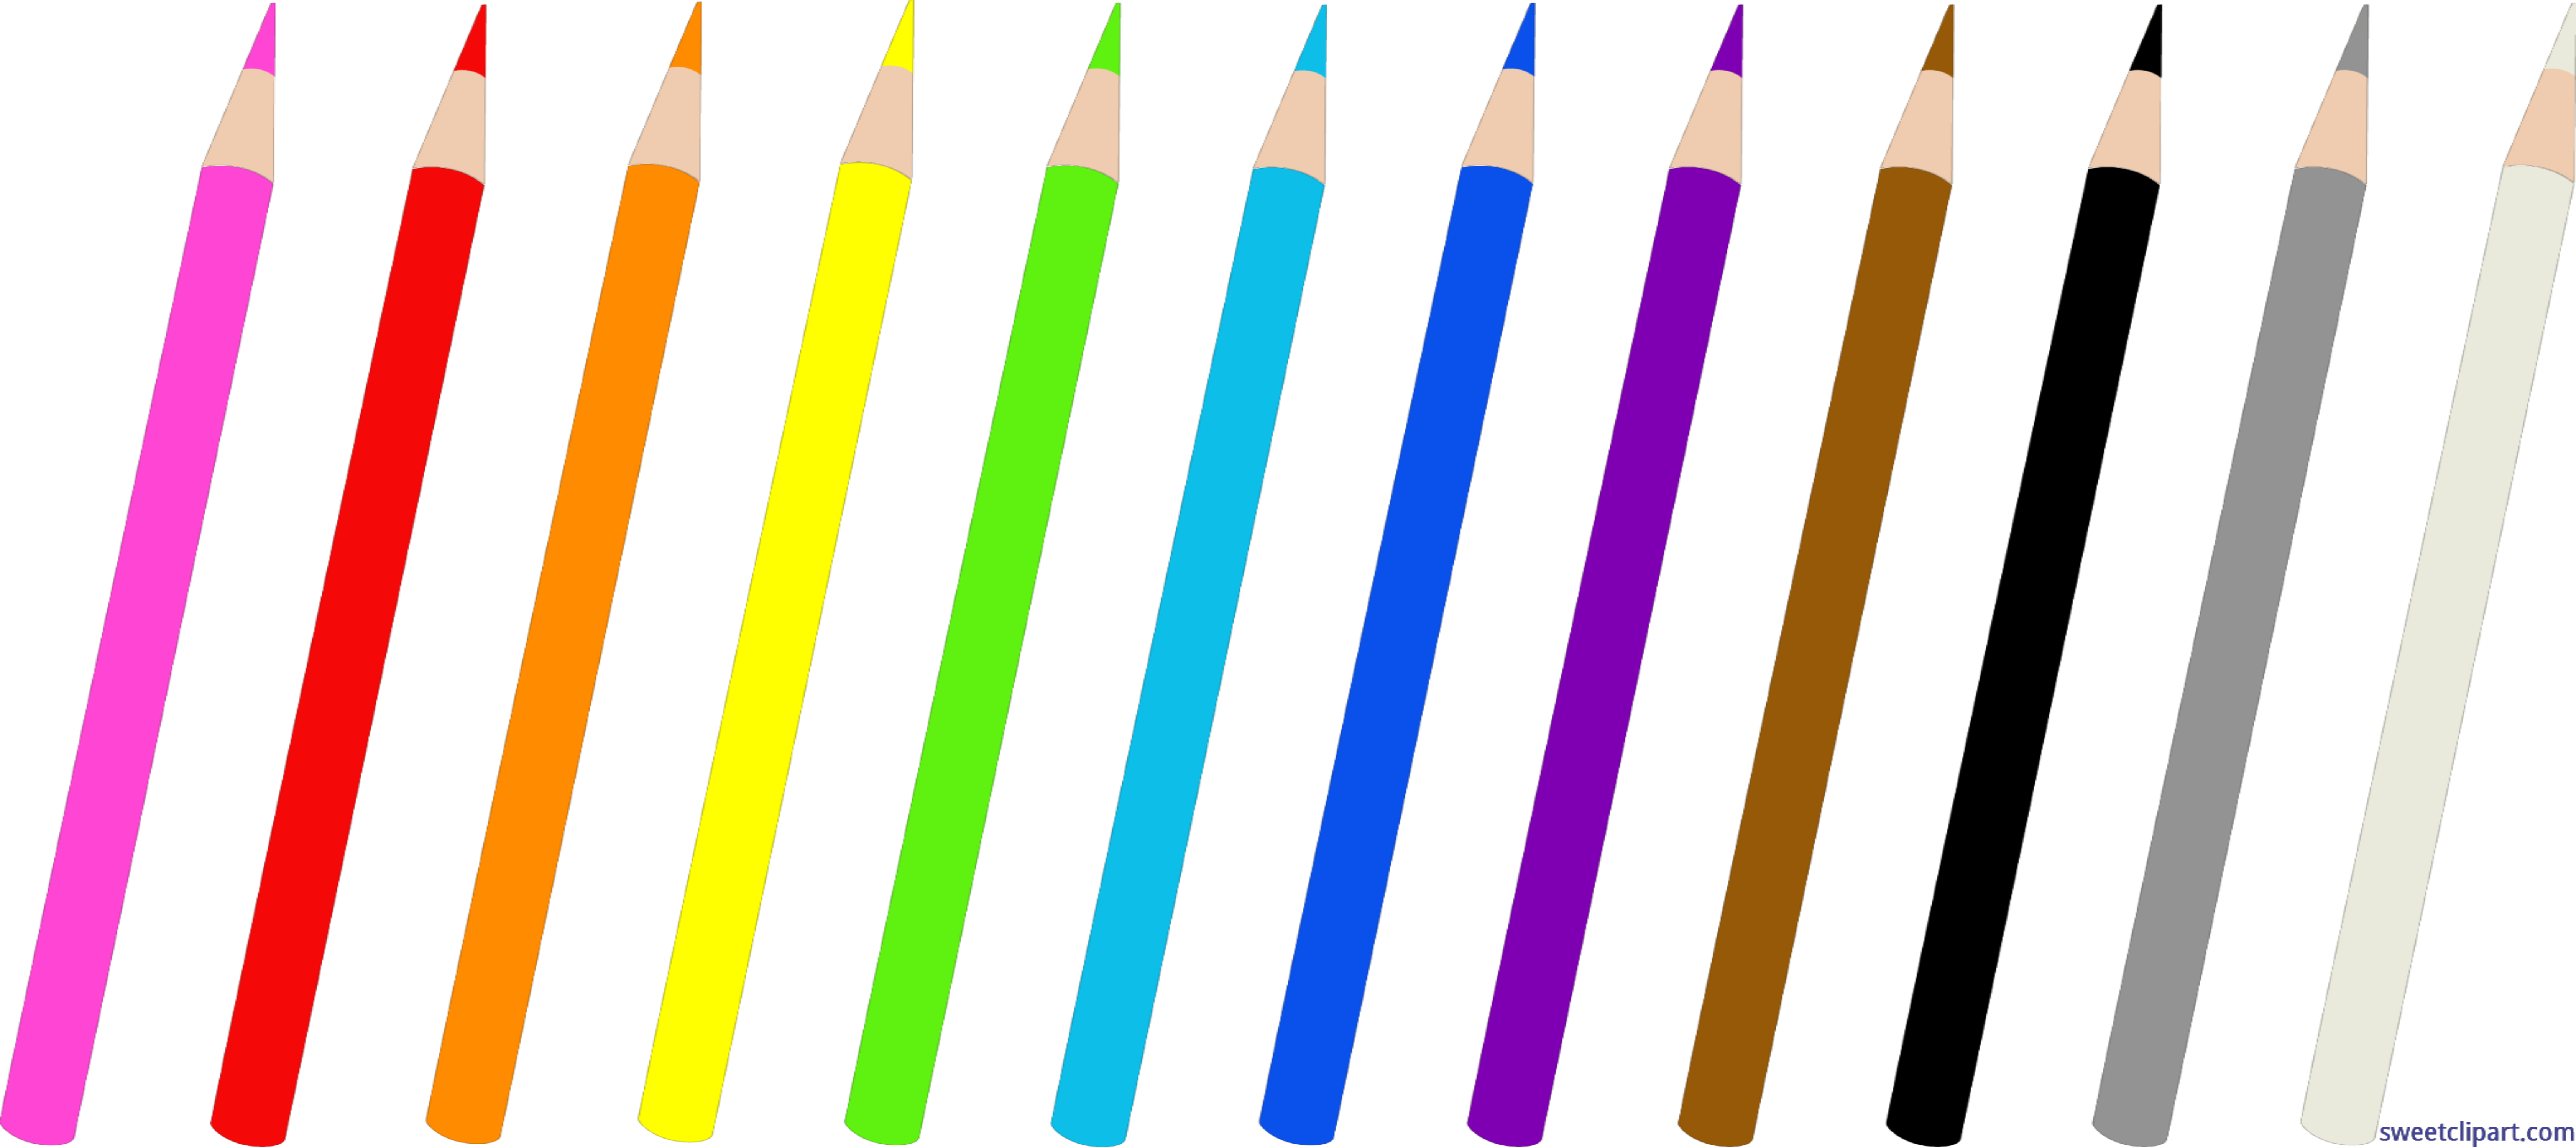 Clipart pencil colored pencil. Pencils set of clip